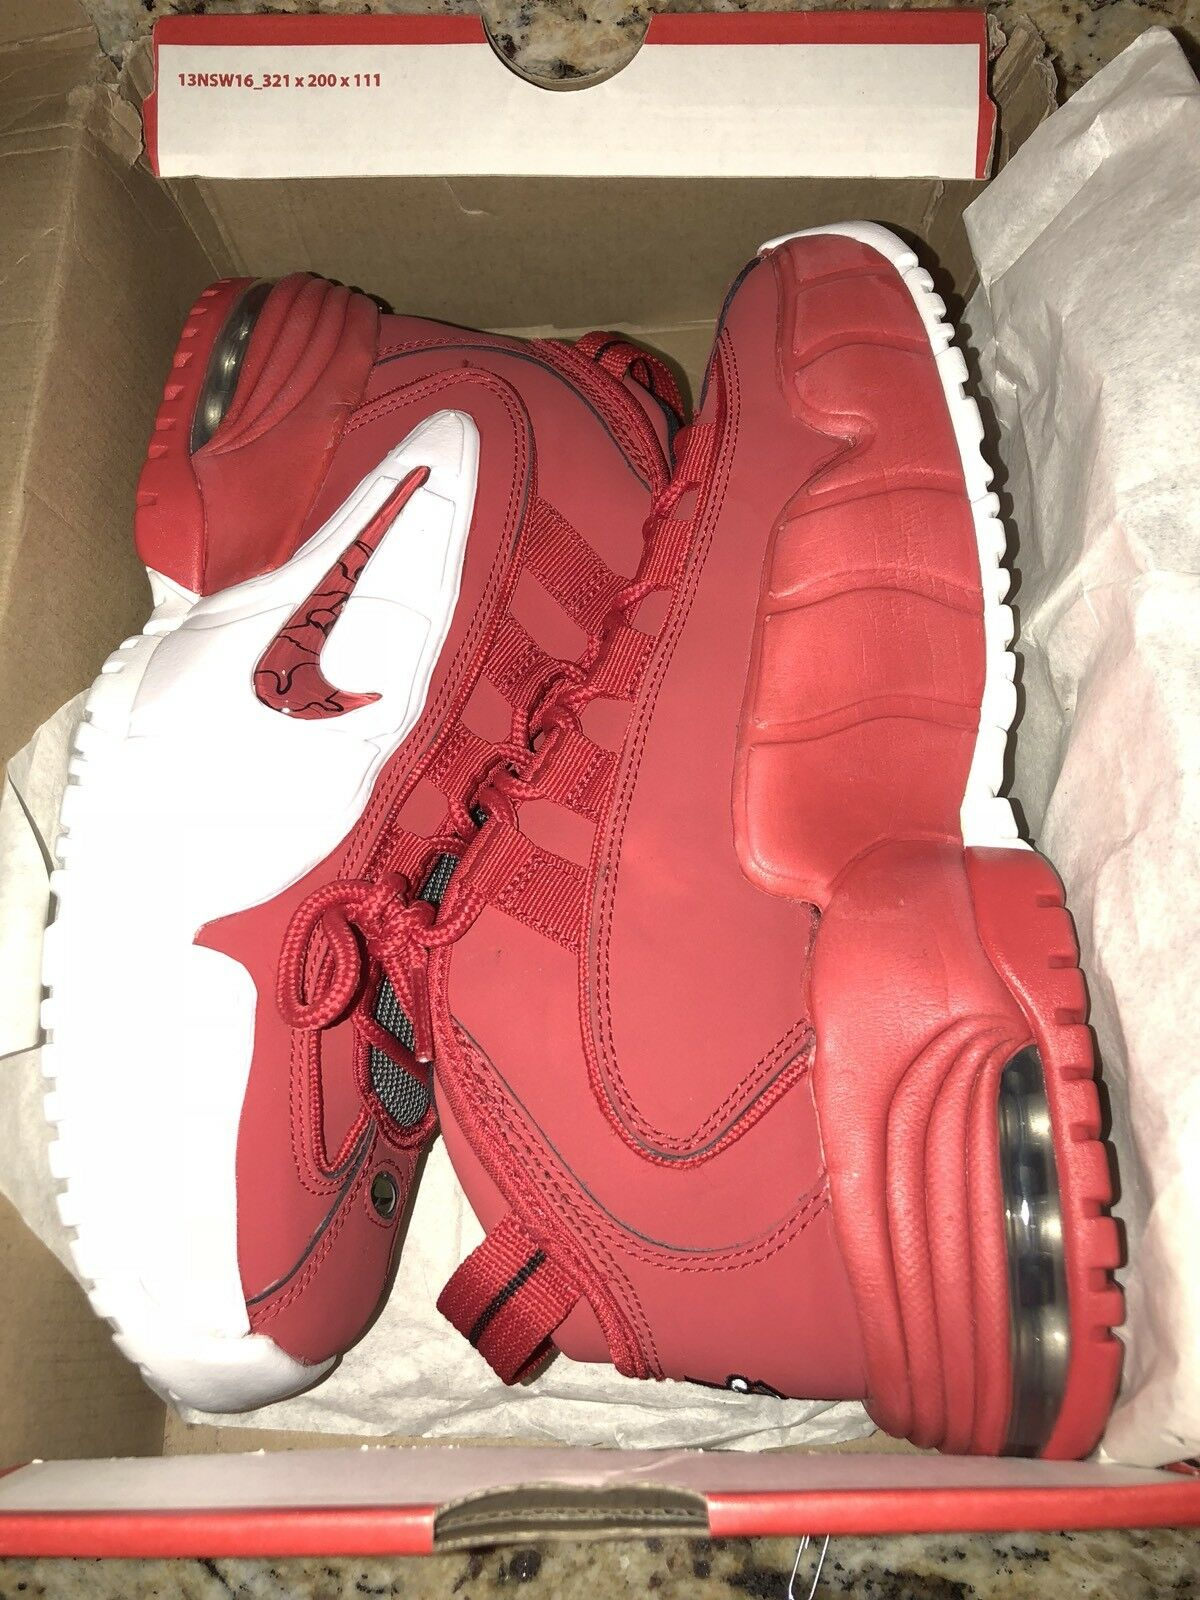 neue penny nike air max 1 penny neue einen retro - feuer an red 685153-600 ds 6,5 6272be